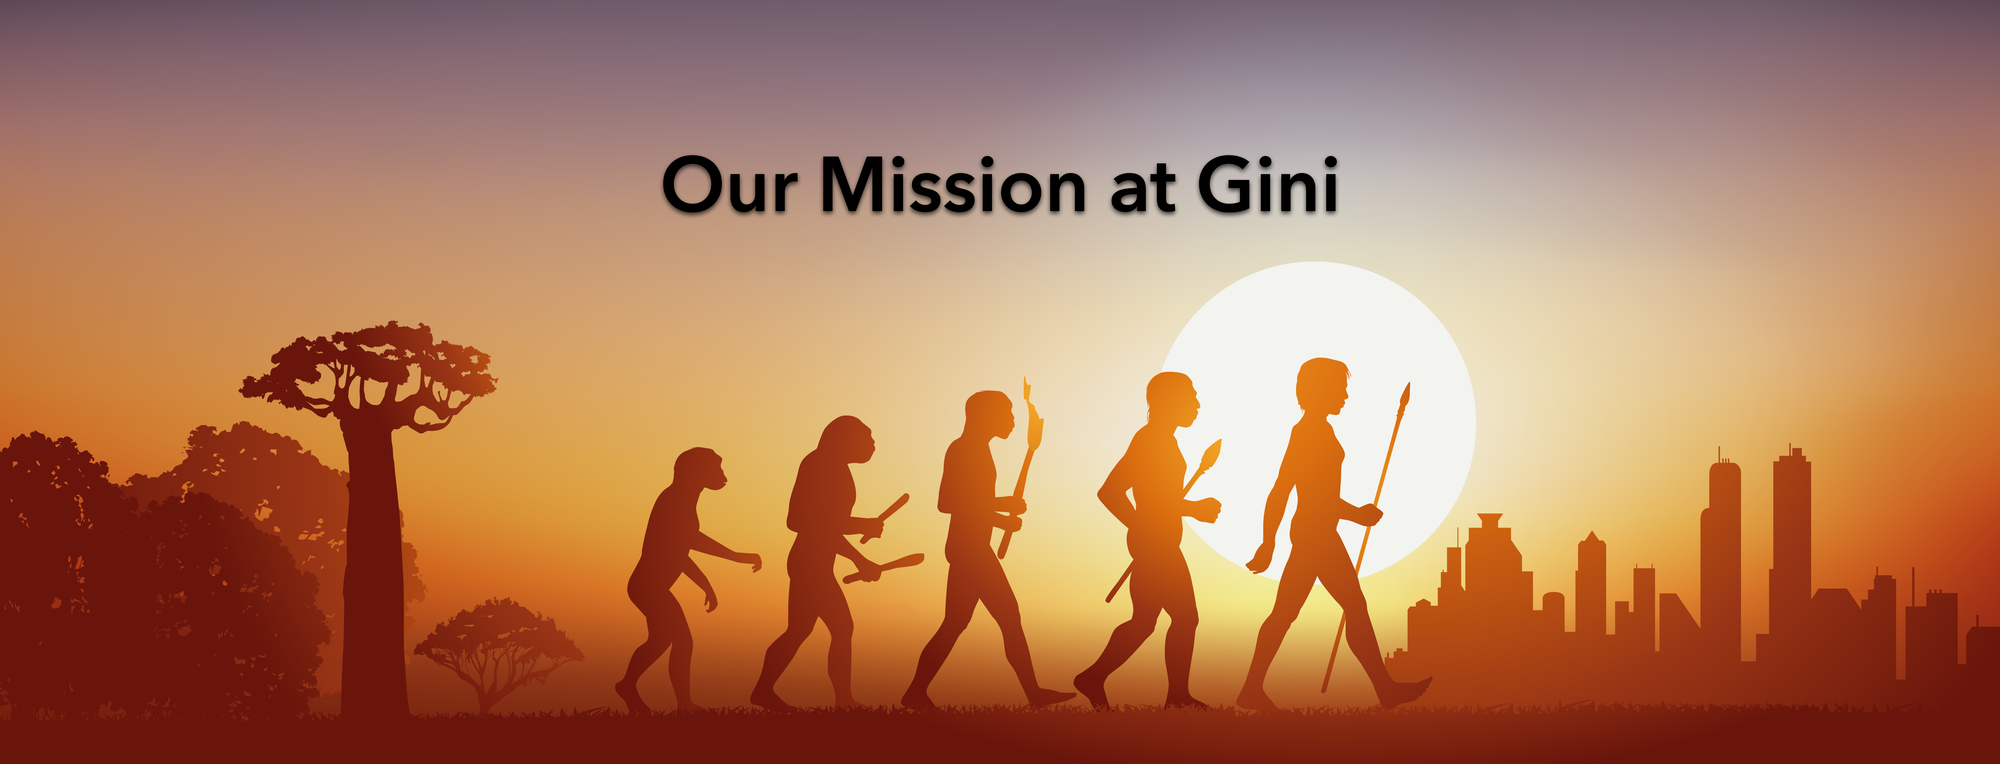 Our Mission At Gini: Helping Humanity Accelerate Its Evolution